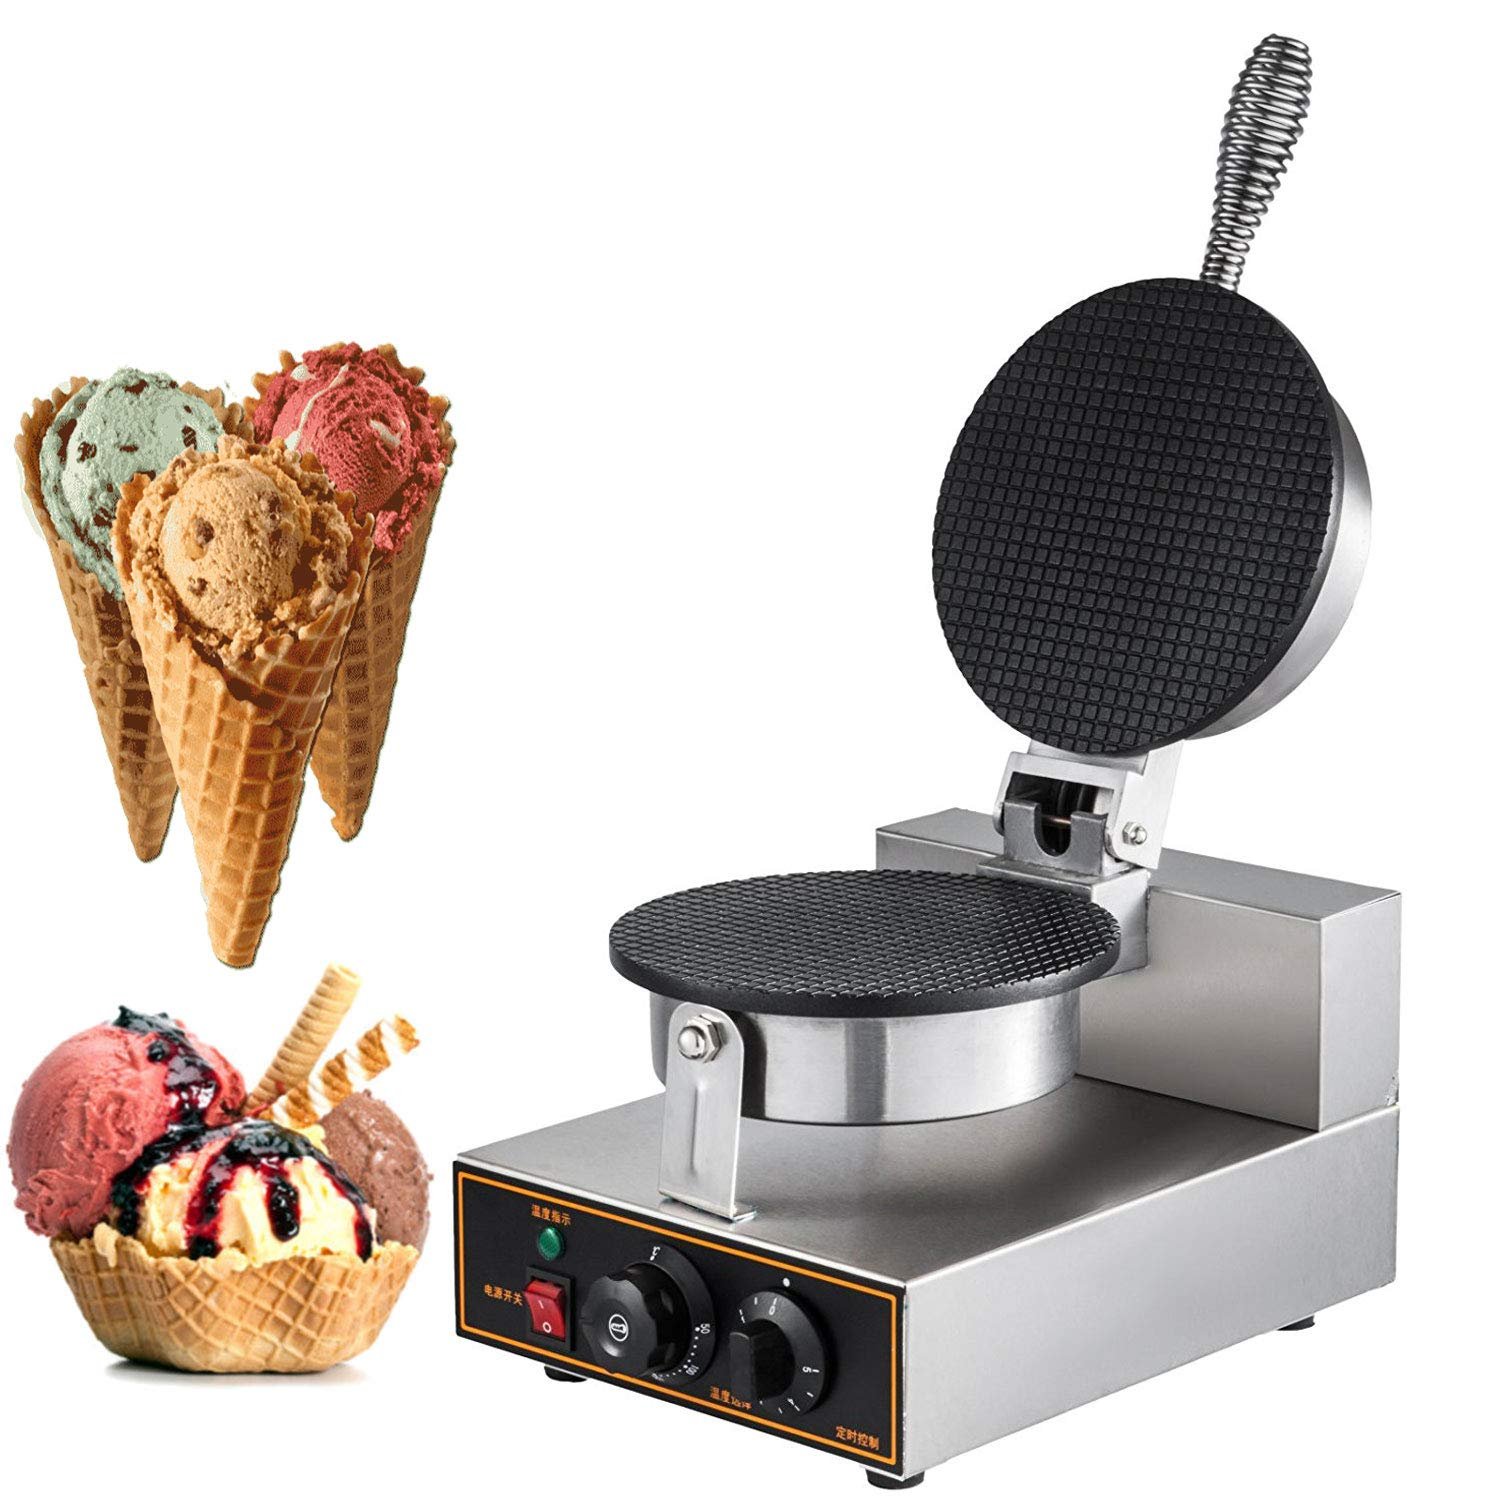 Happybuy Electric Ice Cream Cone Waffle Maker Machine 1200W Stainless Steel Nonstick Surface for for Commercial Home Use, 10x13 inch, by Happybuy